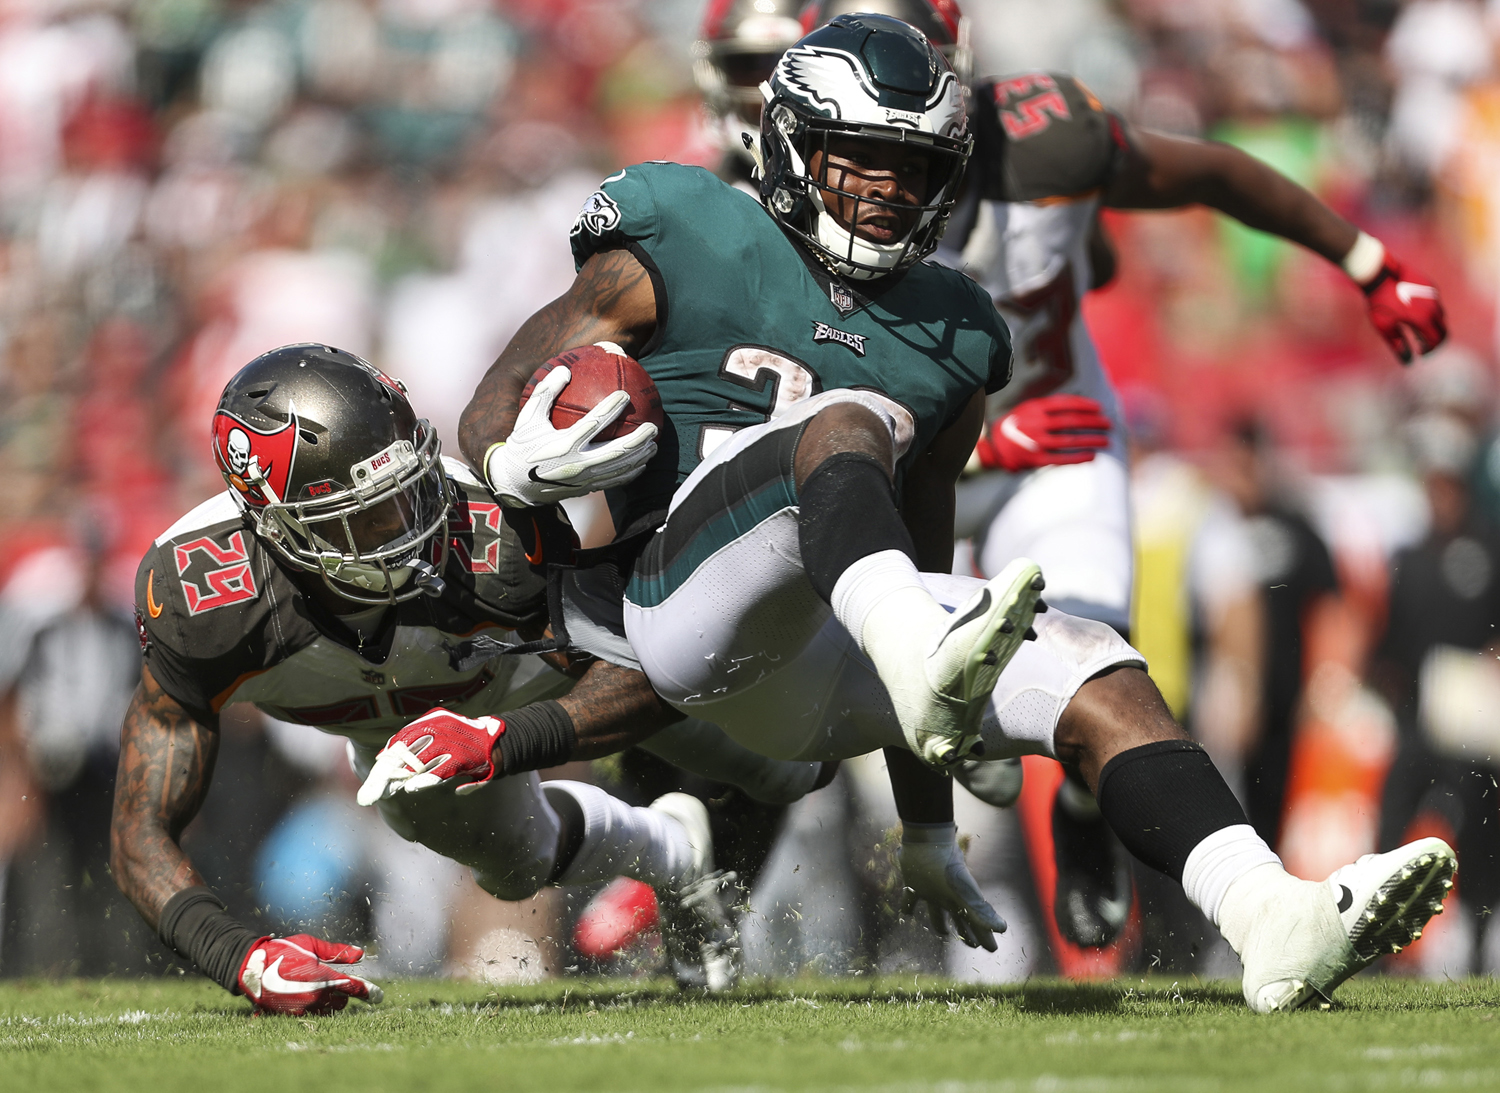 Tampa Bay Buccaneers cornerback Ryan Smith (29) stops Philadelphia Eagles running back Corey Clement (30) on a punt return during the fourth quarter on Sept. 16 at Raymond James Stadium in Tampa, Fla.